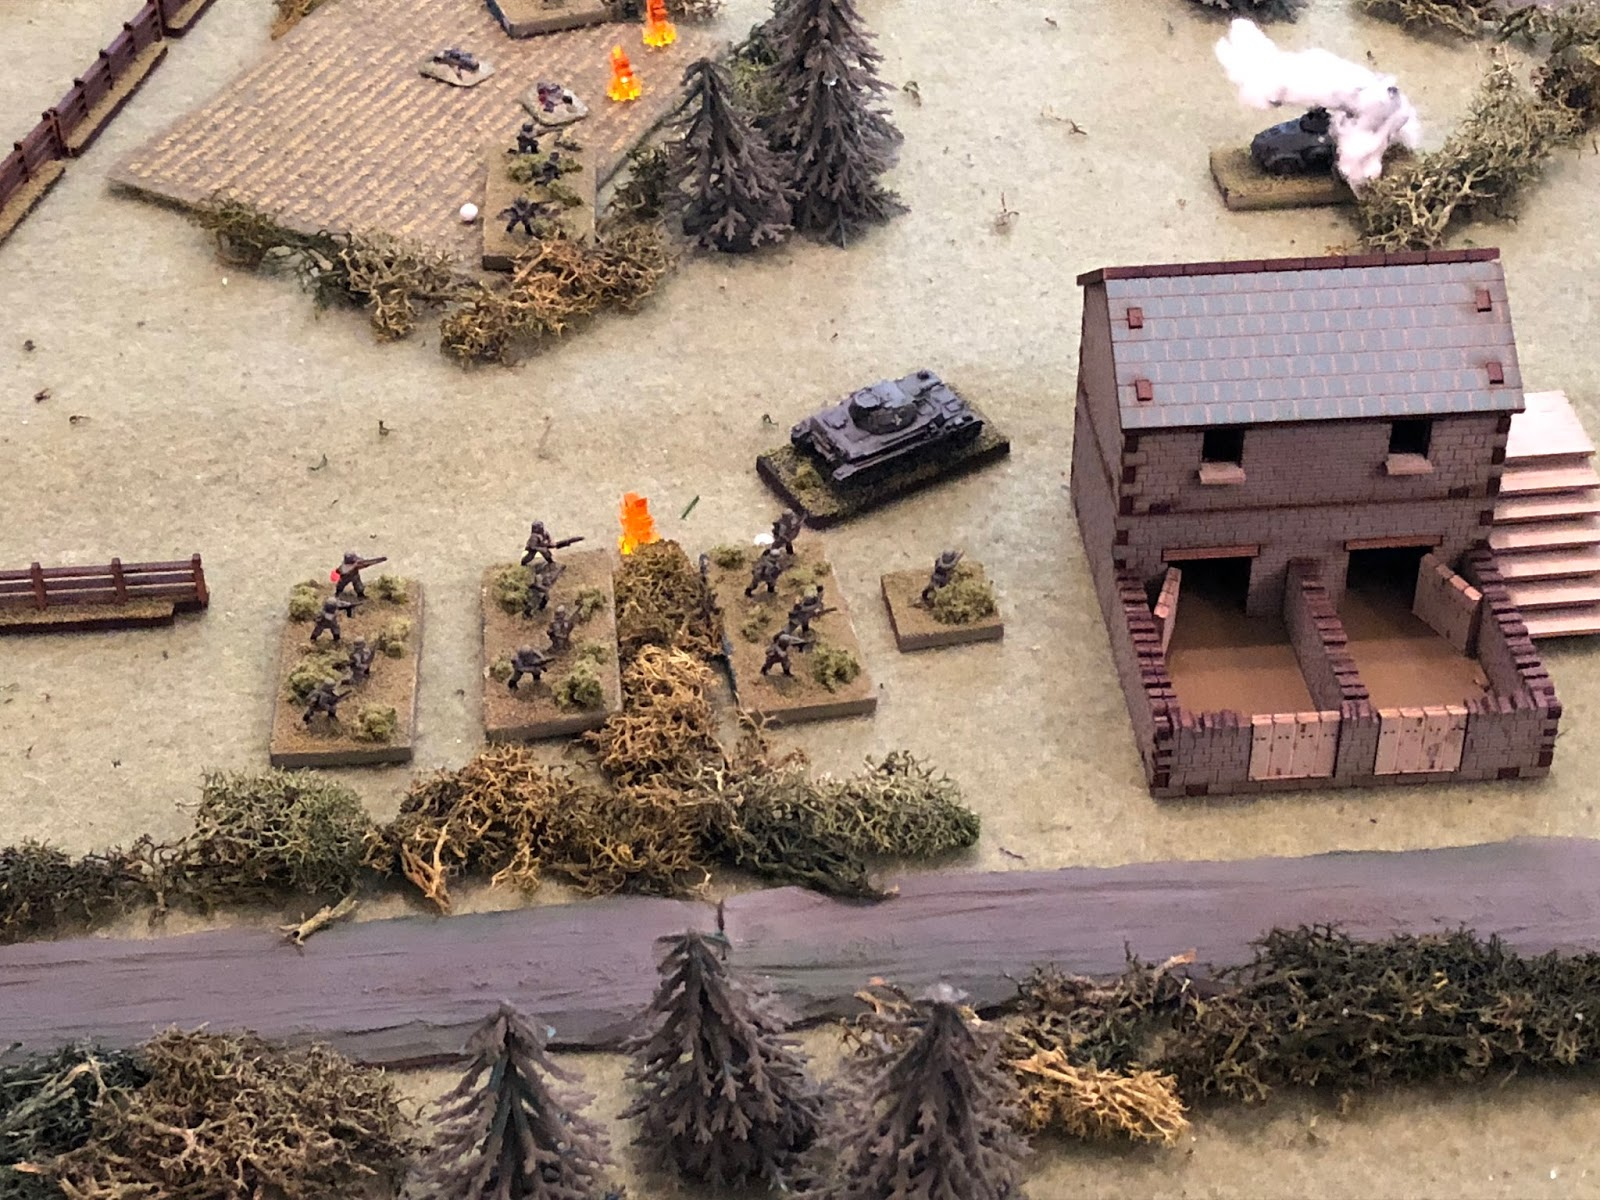 In the center, Cpl Rausch maneuvers his Pz IV to the south side of the Granary, between 4th Platoon (top left) and 3rd Platoon (centre).